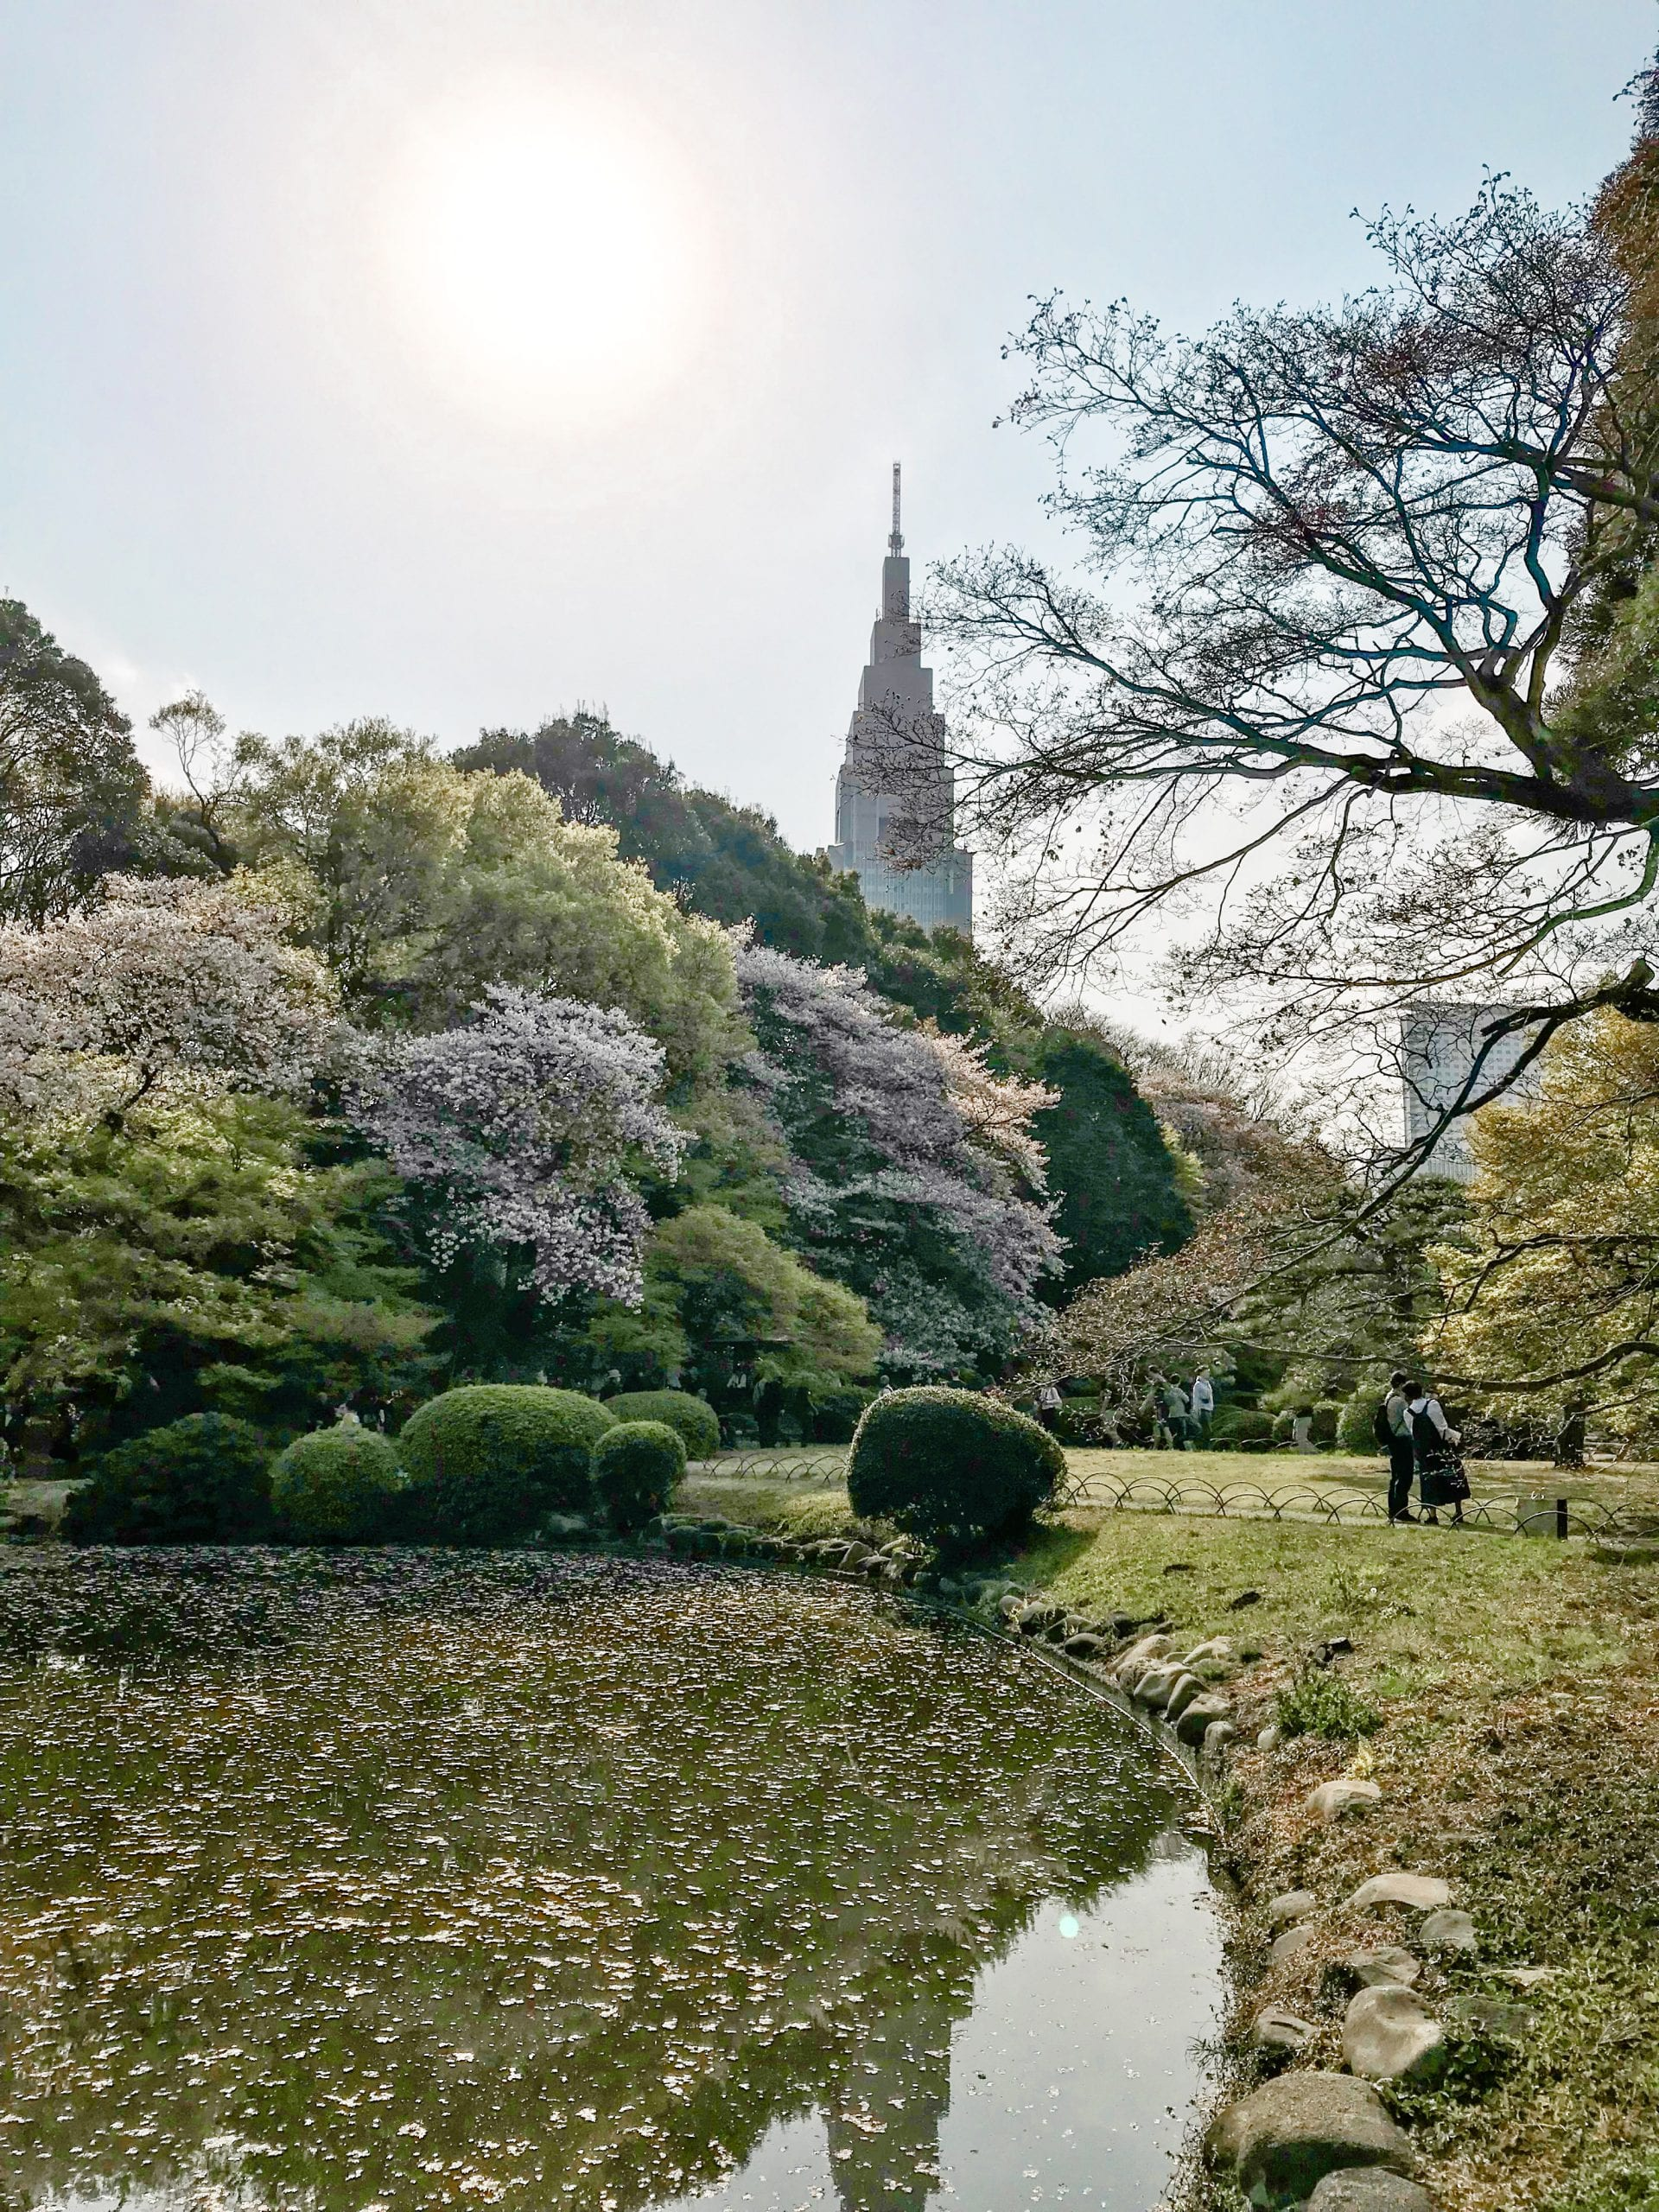 Tokio Japan Shinjuku Gyoen National Garden Hanami spots